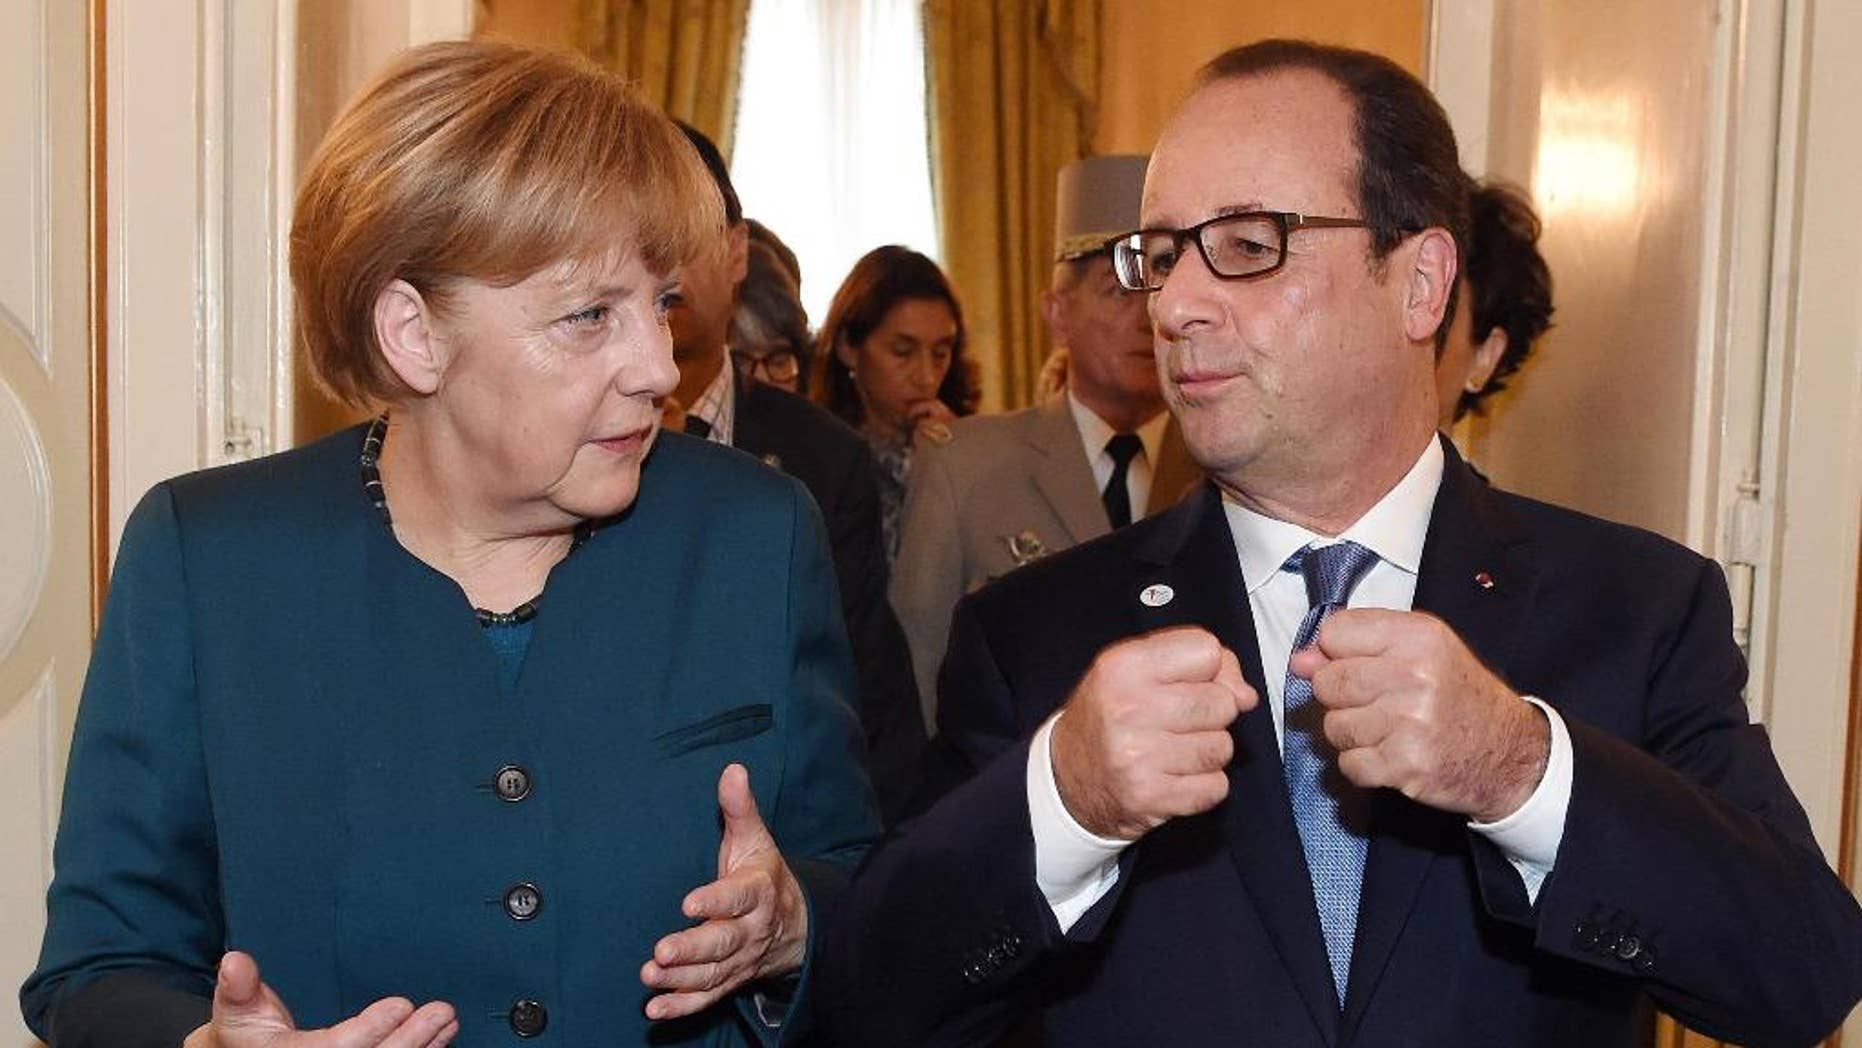 German Chancellor Angela Merkel, left, and French President Francois Hollande talk after a meeting on the sidelines of the  ASEM summit of European and Asian leaders in Milan, northern Italy, Friday, Oct. 17, 2014. Russian President Vladimir Putin is looking to get relief from Western economic sanctions imposed since Russia's annexation of the Crimean Peninsula and its support for a pro-Russia insurgency in eastern Ukraine. To that end, he has scheduled a series of meetings on the sidelines of a two-day ASEM summit of European and Asian leaders. (AP Photo/Daniel Dal Zennaro, POOL)